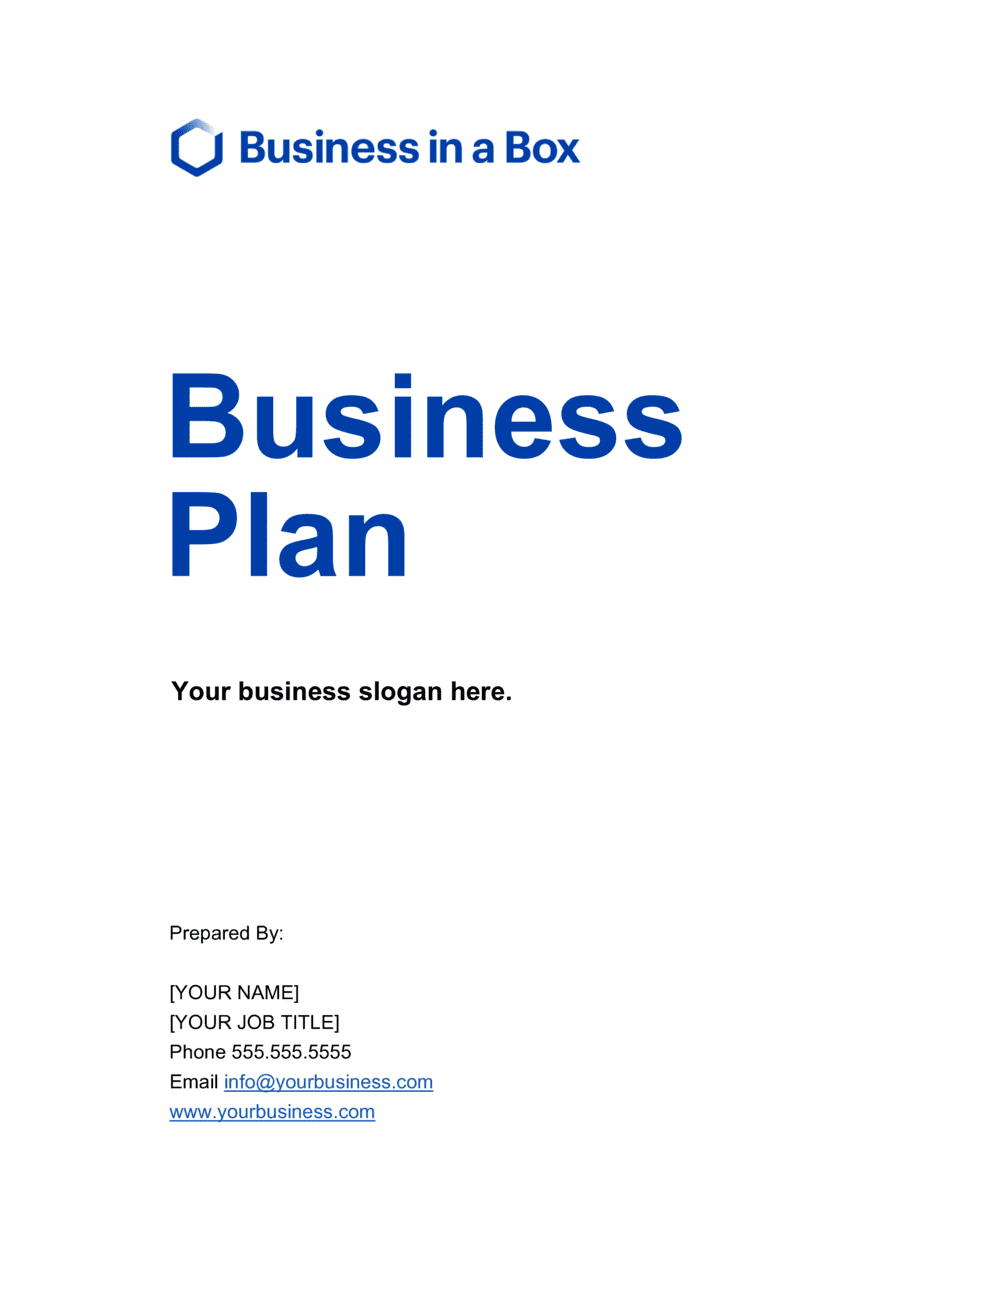 Business Cover Page Template from templates.business-in-a-box.com